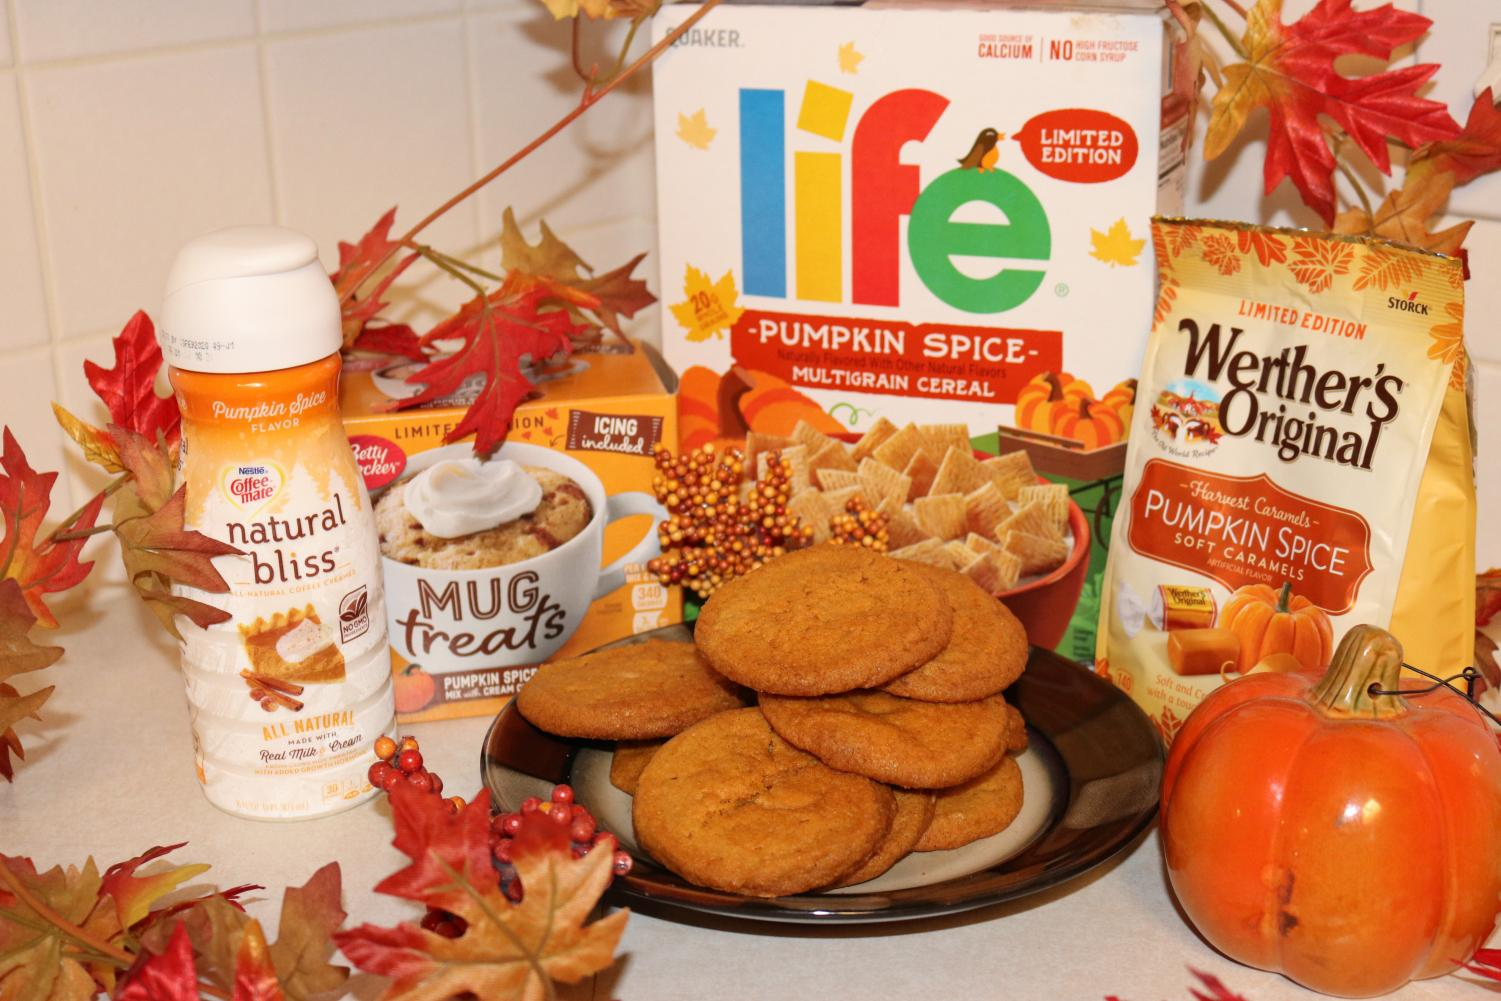 All of the pumpkin spice products that were tried, including a batch of freshly baked pumpkin cookies.